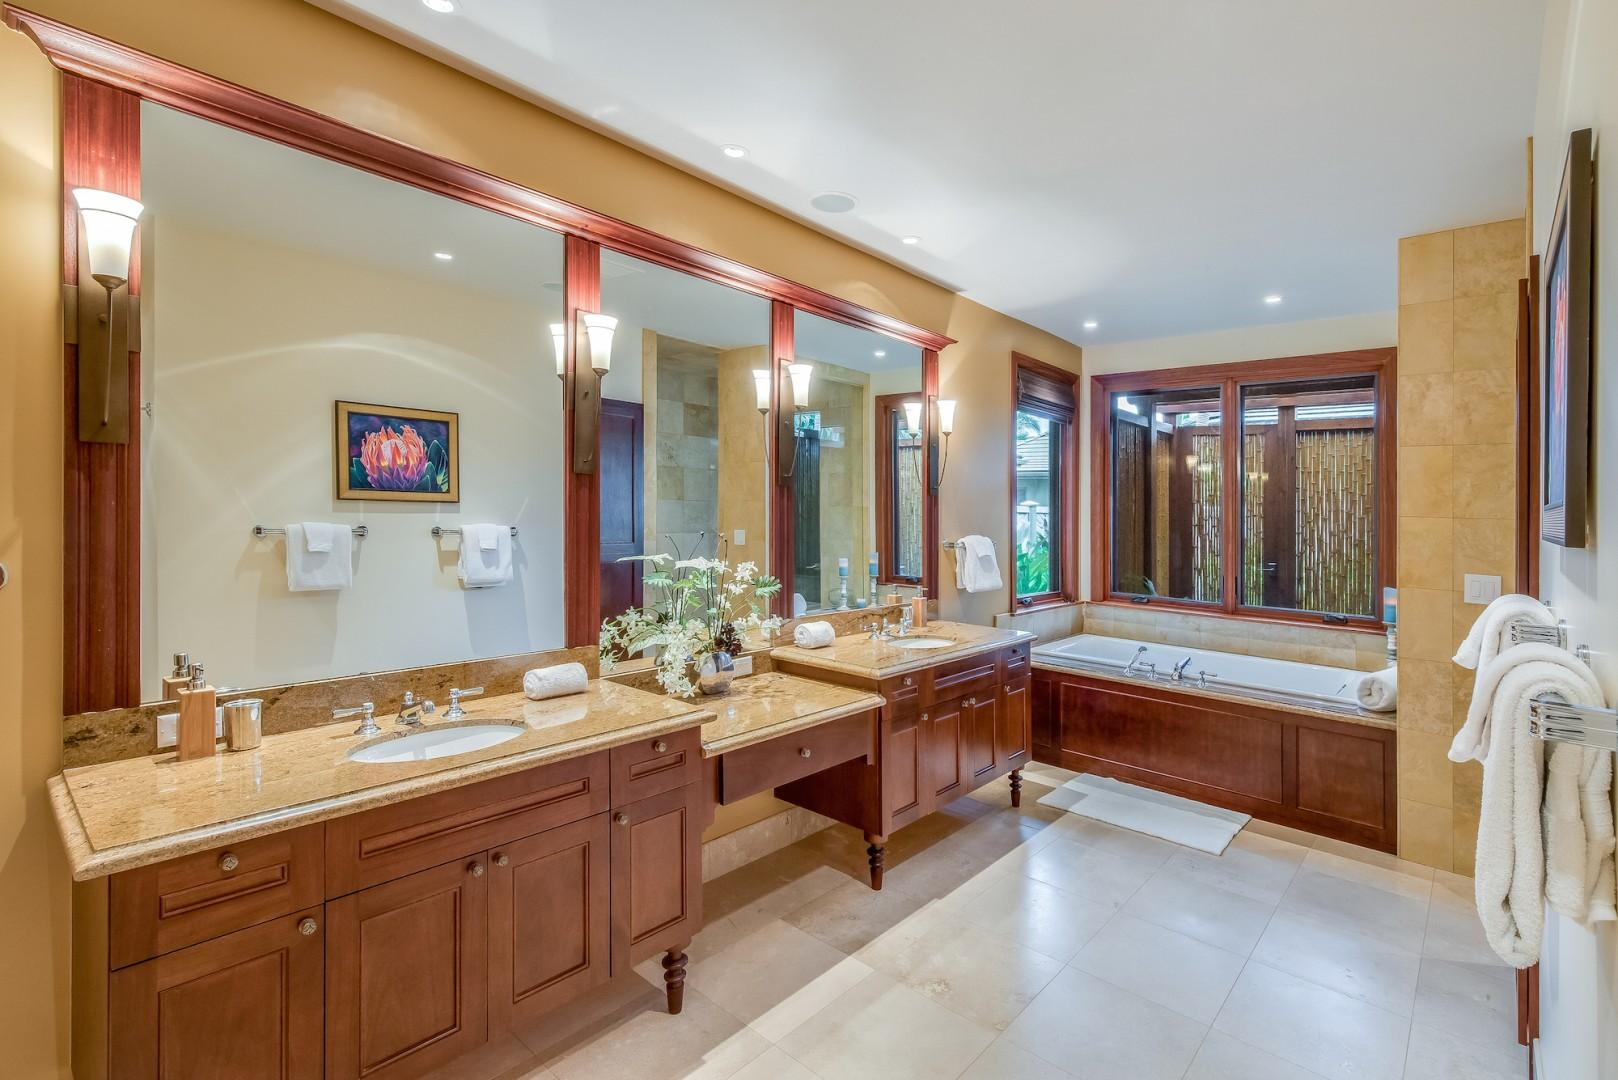 Downstairs Master Bath w/ Dual Vanity, Luxurious Soaking Tub, Glass Shower & Bonus Bamboo Enclosed Outdoor Shower